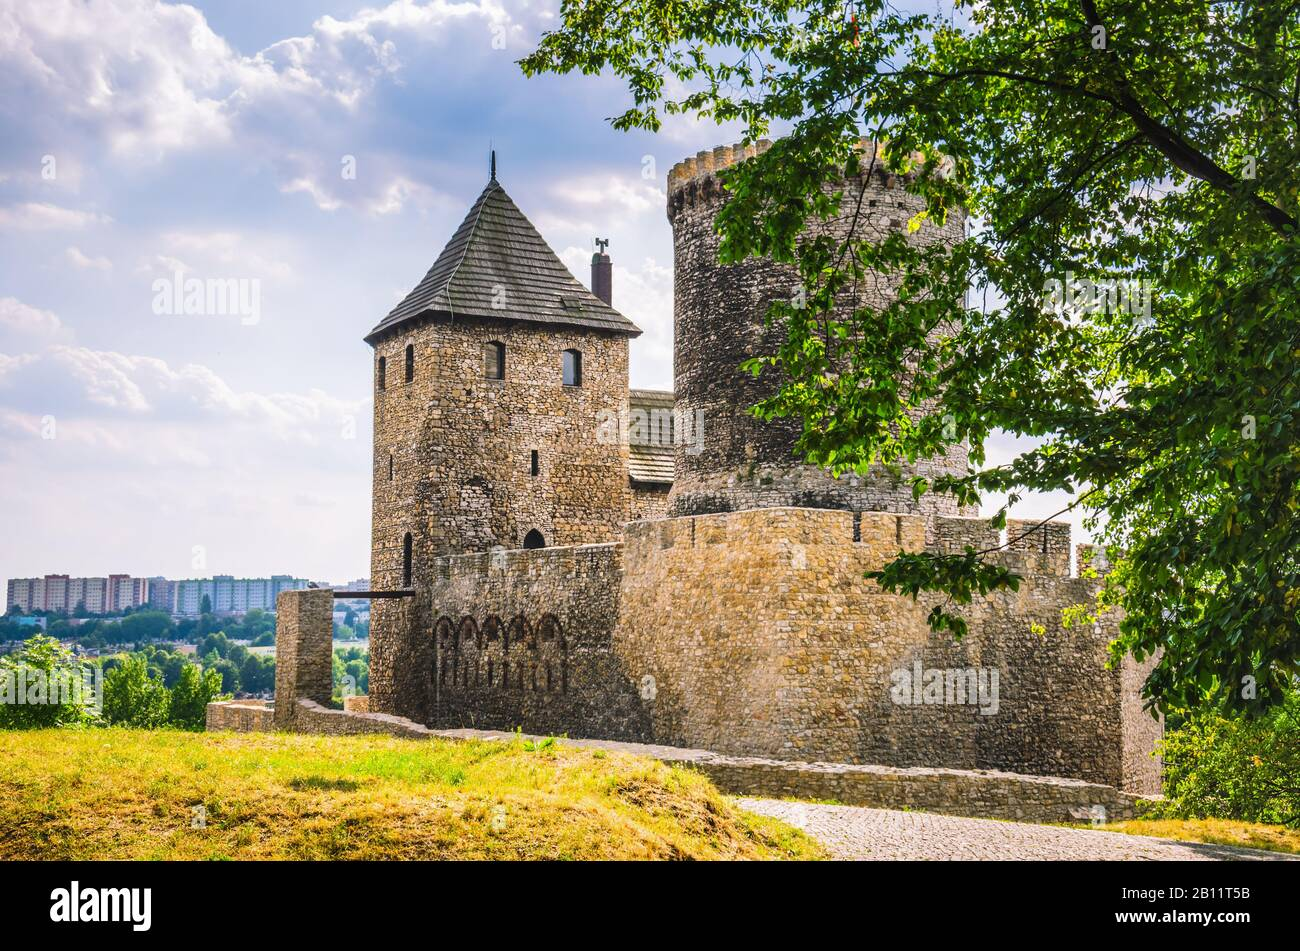 Medieval stone castle in Bedzin city, Poland Stock Photo